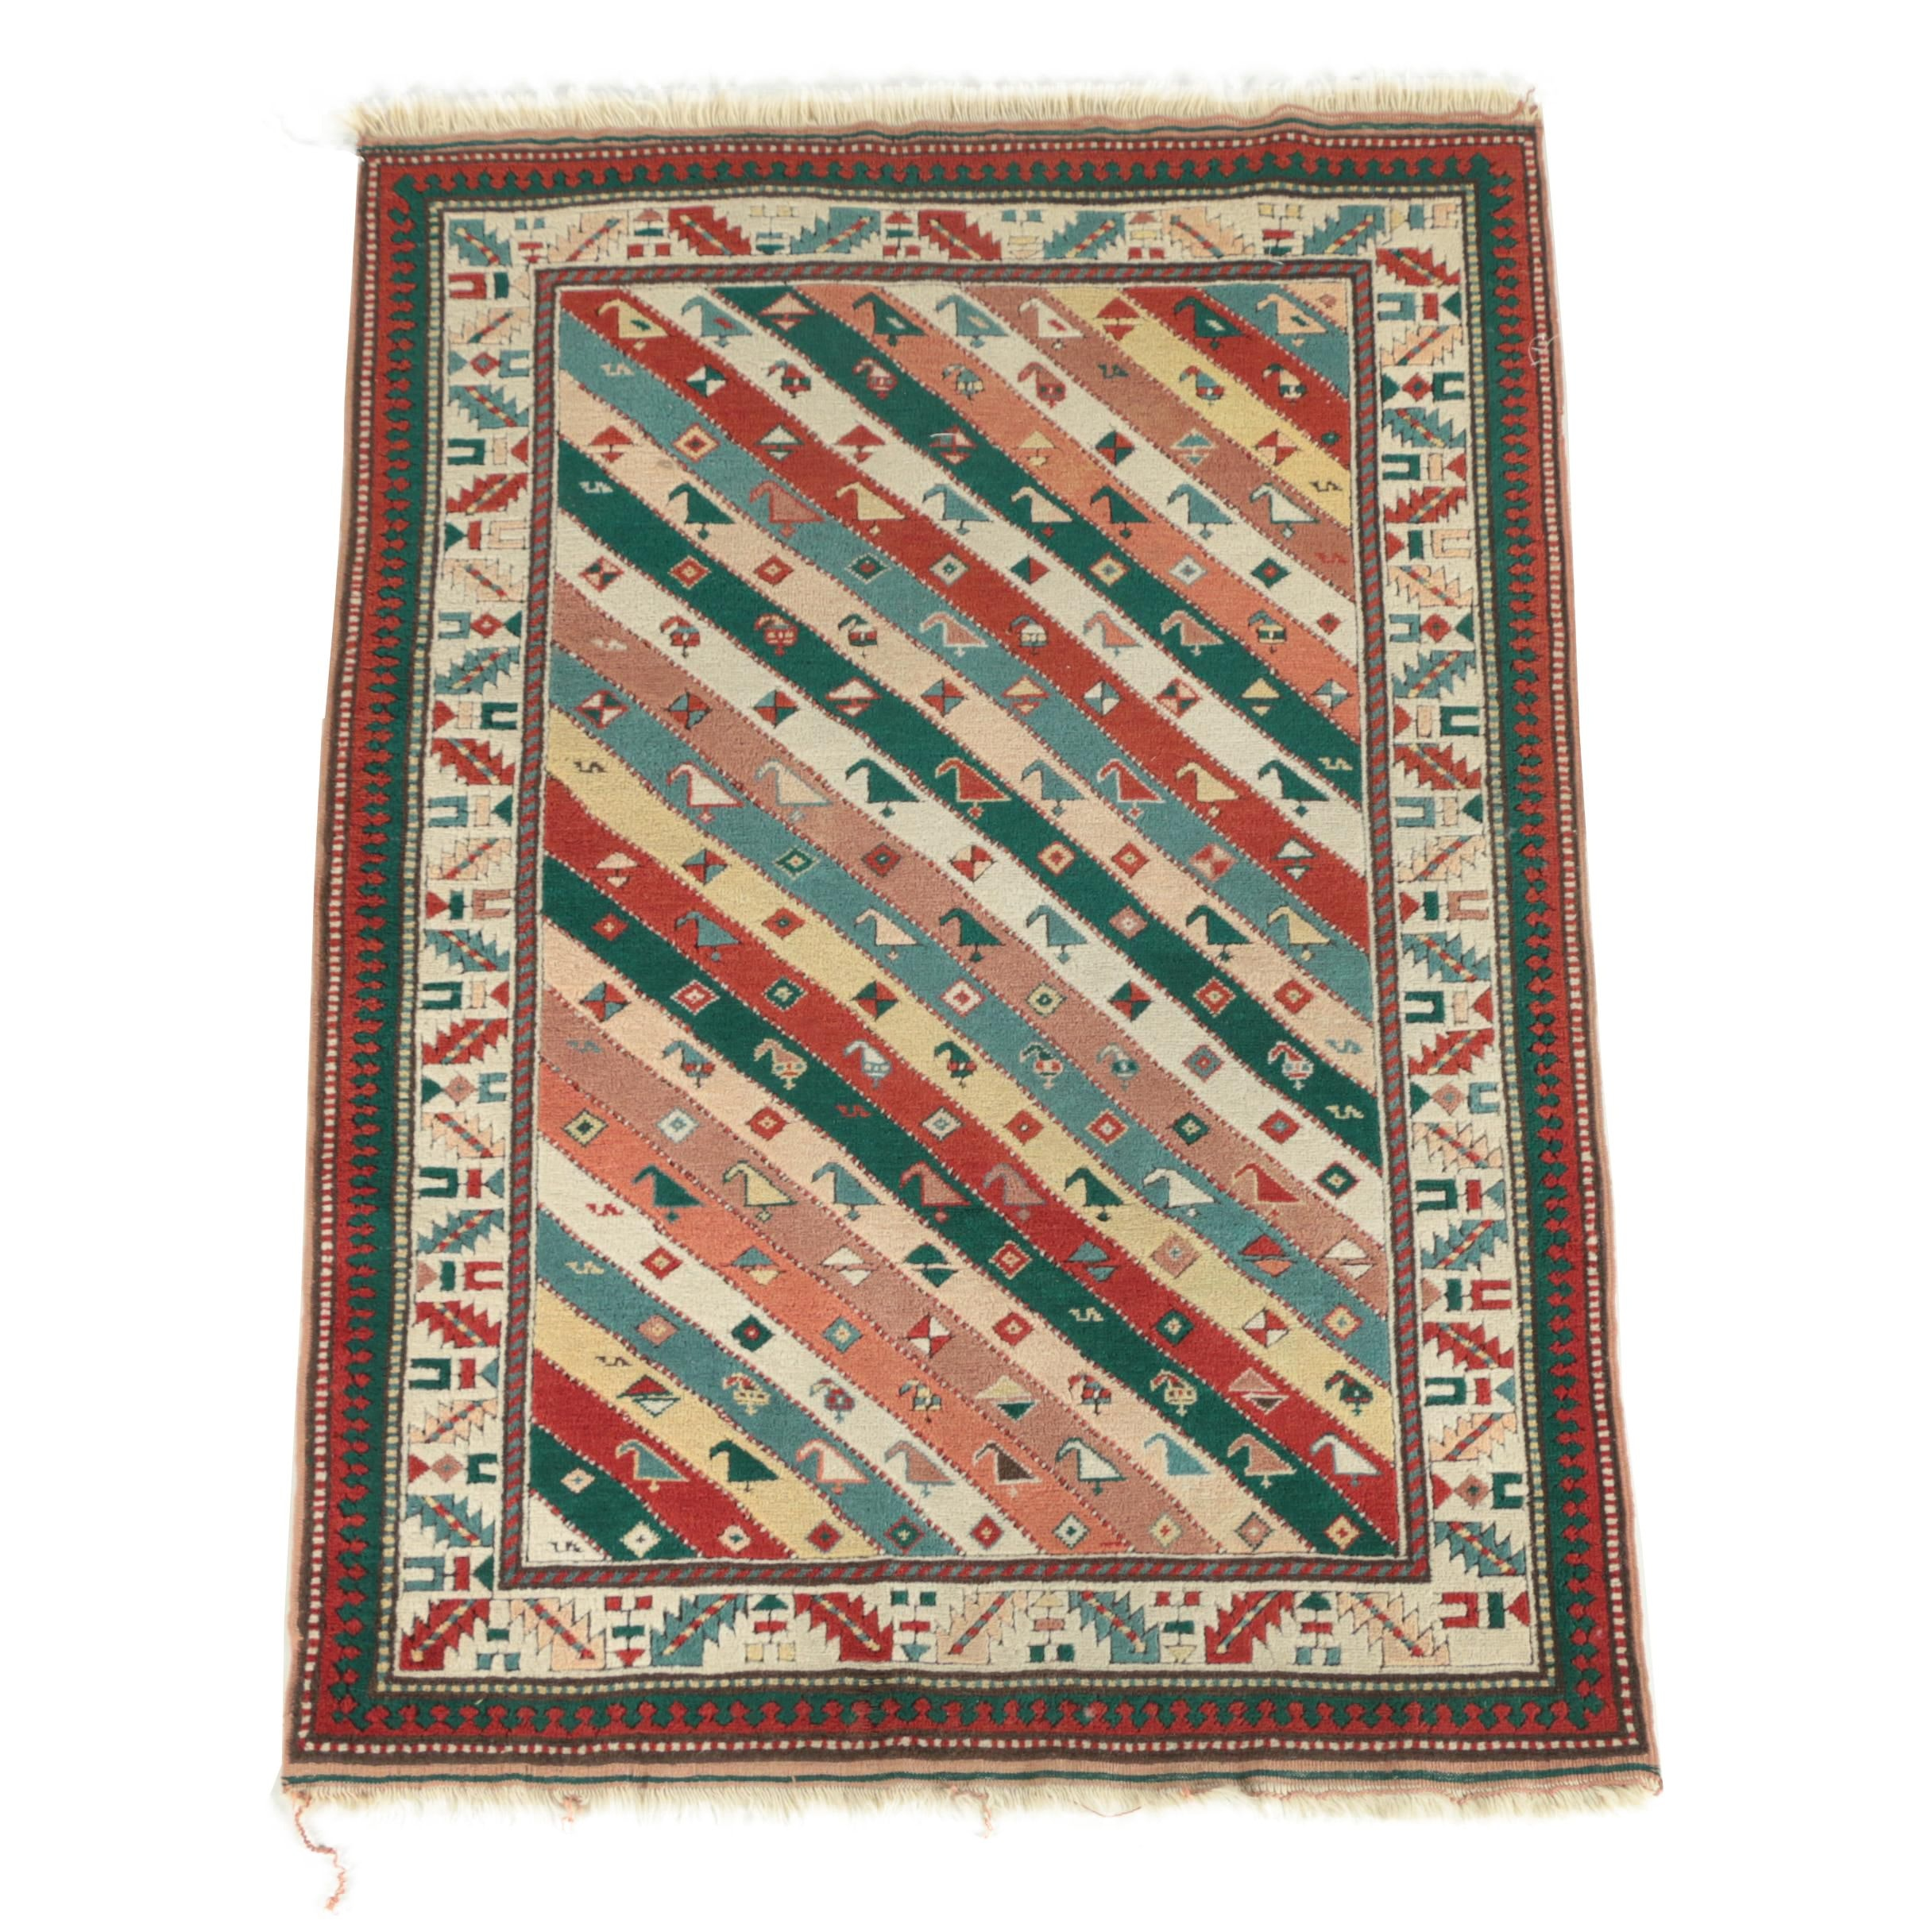 Hand-Knotted Caucasian Genji Wool Area Rug